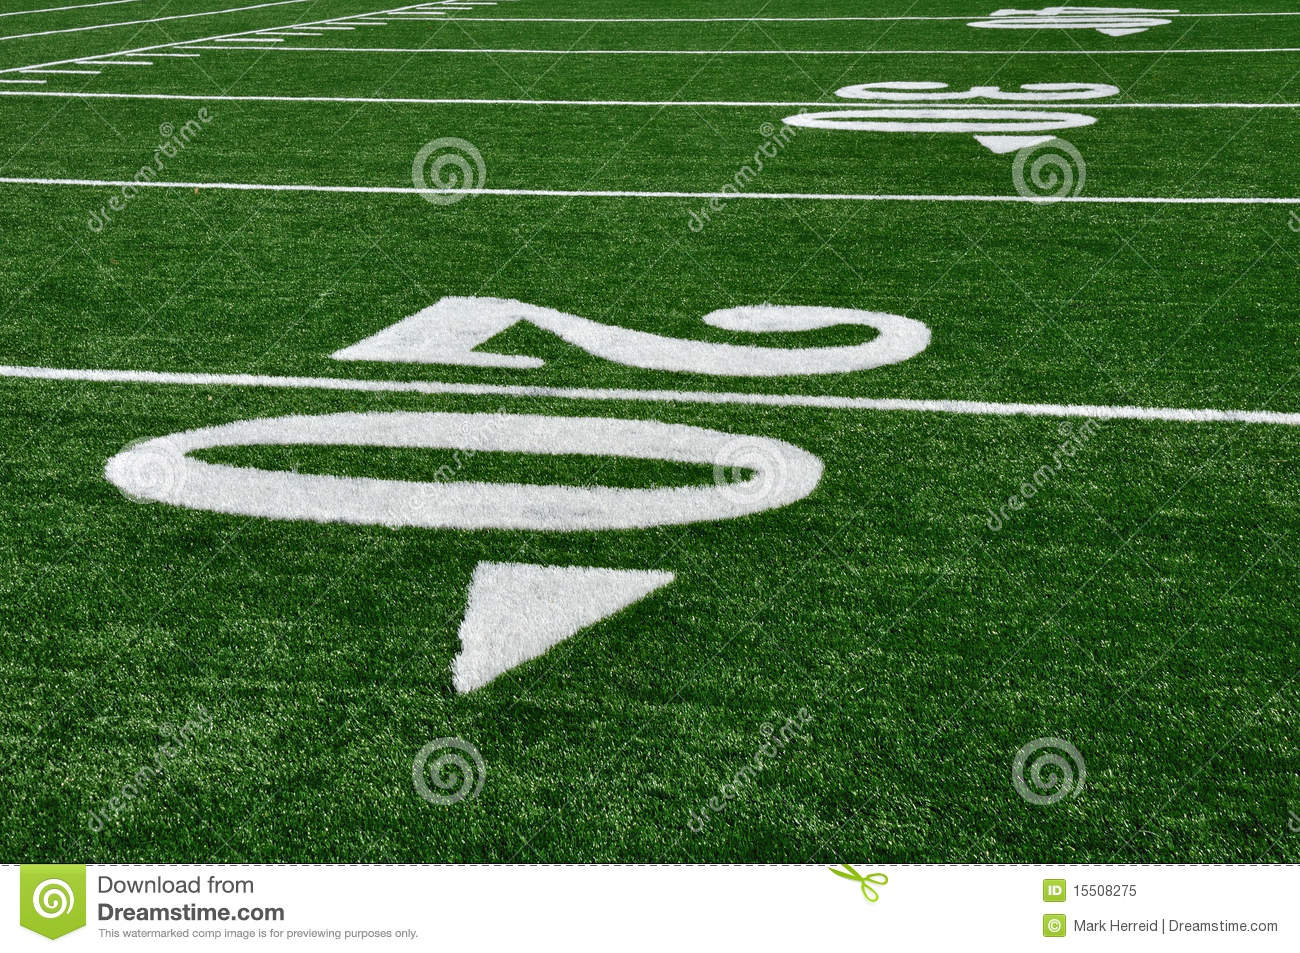 20 yard line on american football field stock image